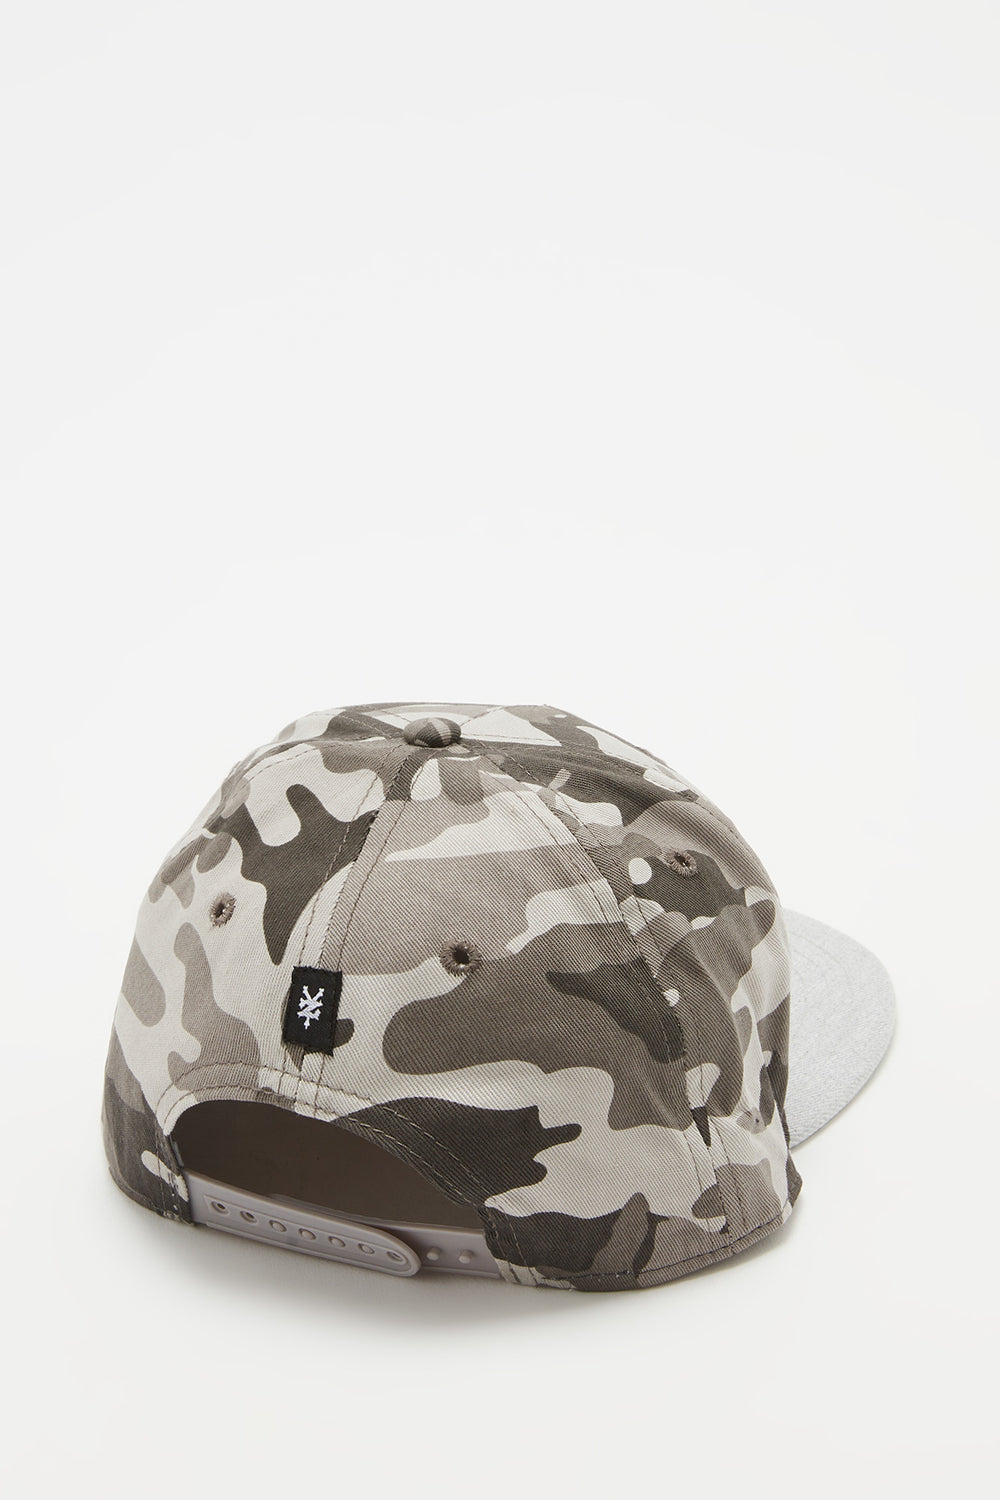 Casquette Camouflage Zoo York Homme Gris